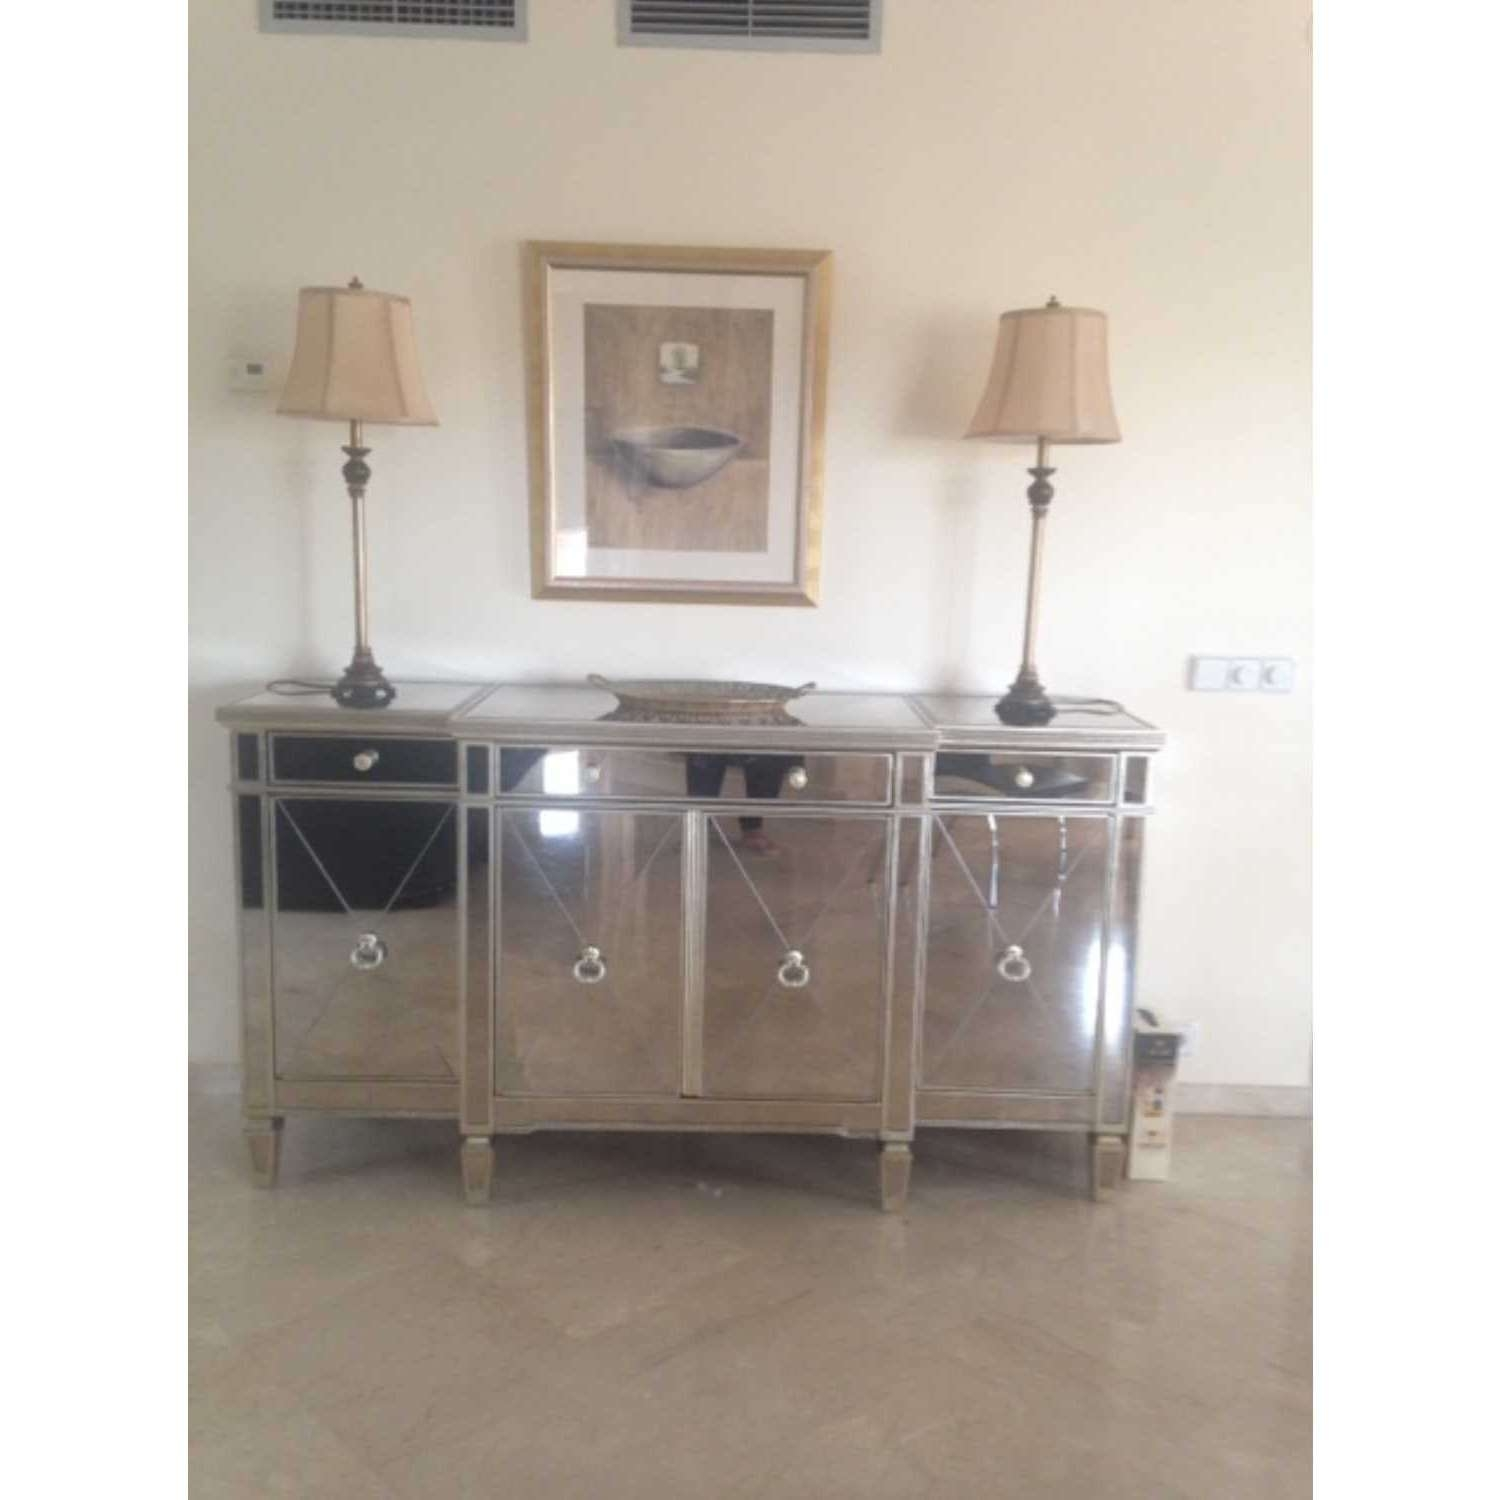 Large Antique Seville Venetian Mirrored Glass Sideboard 4 Door Pertaining To Mirrored Sideboards (View 12 of 20)